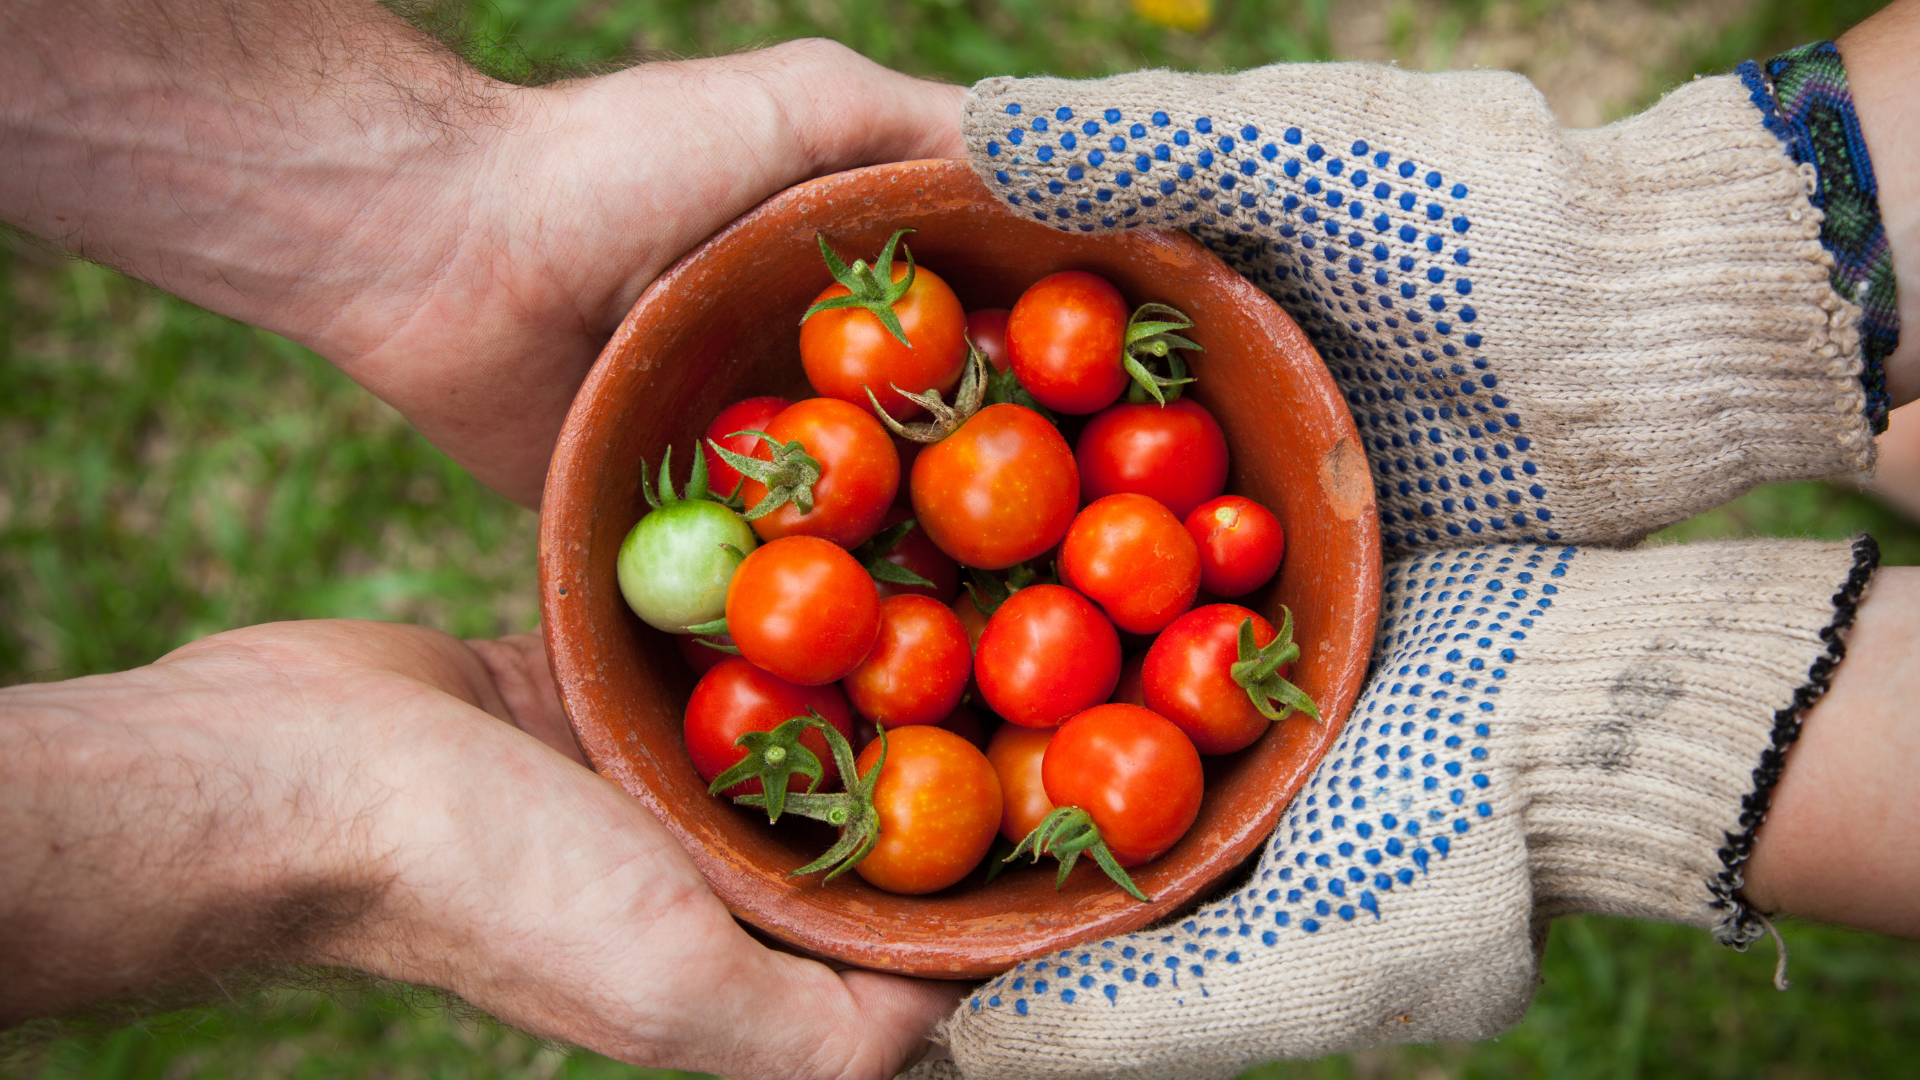 a bowl of tomatoes is shared in the hands of two people